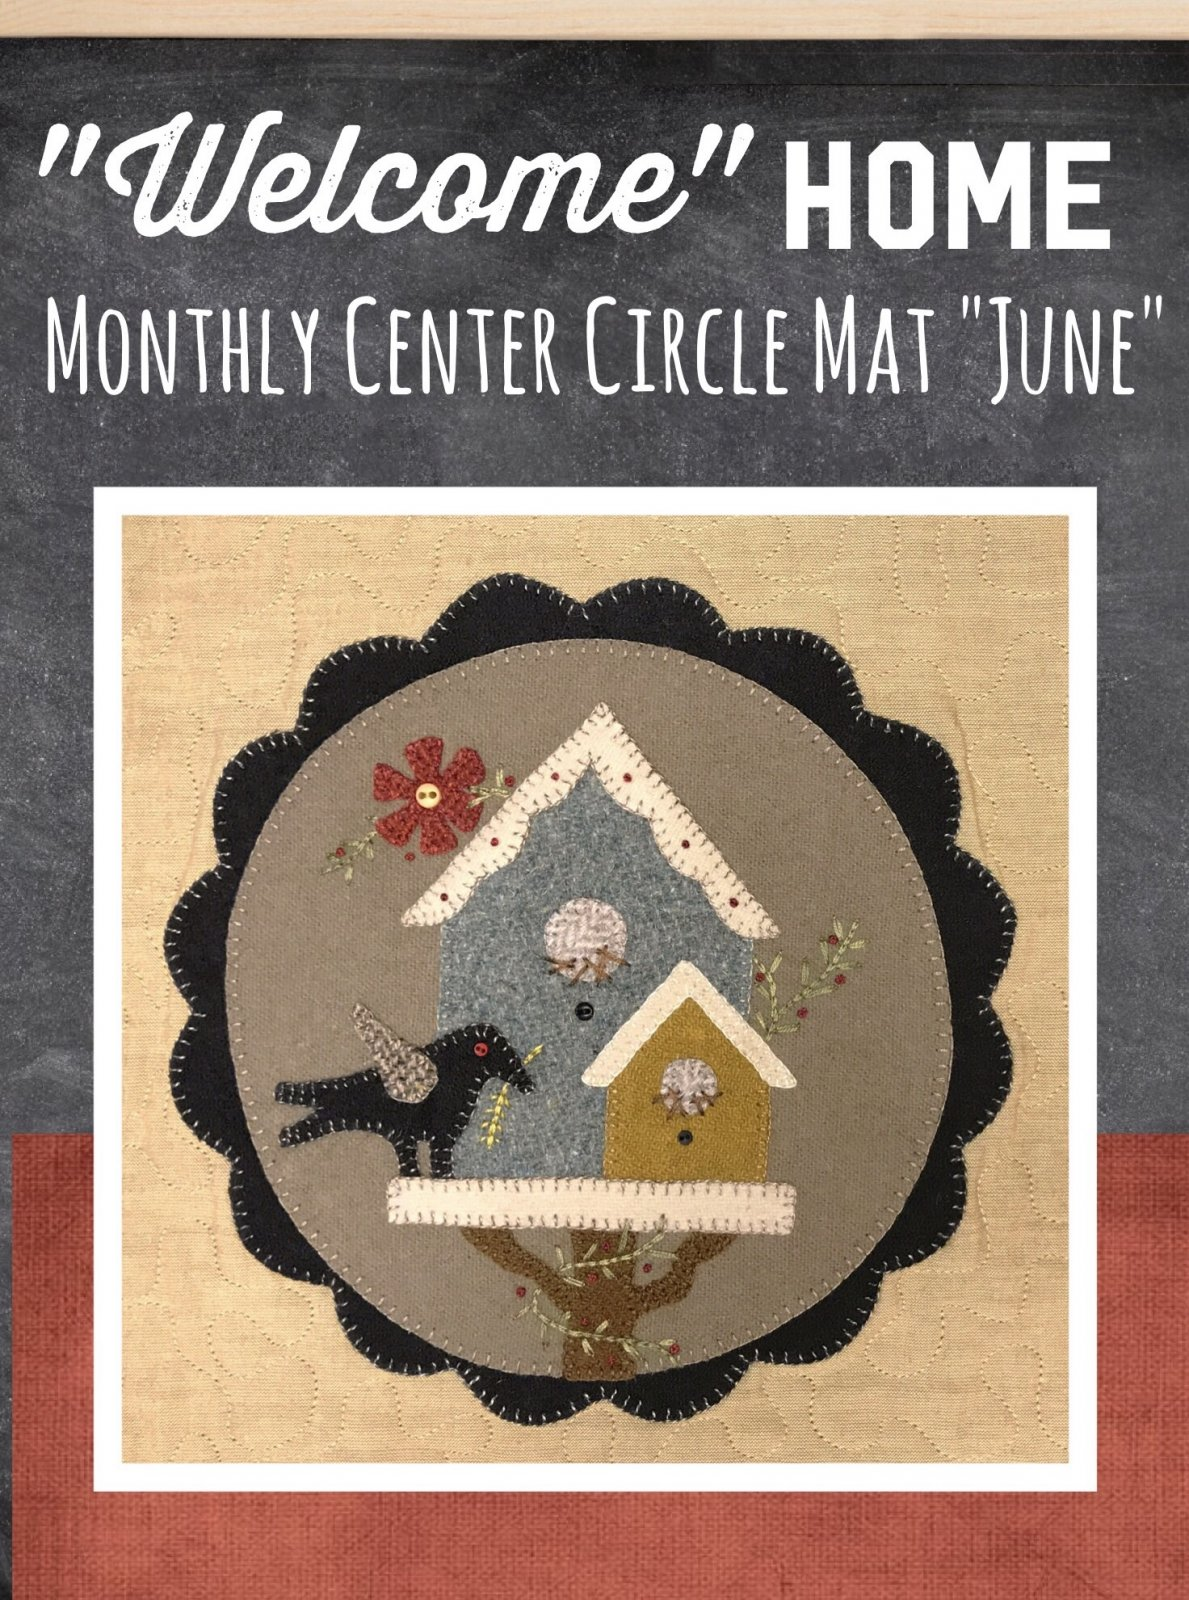 Welcome HOME June Center Circle Pattern